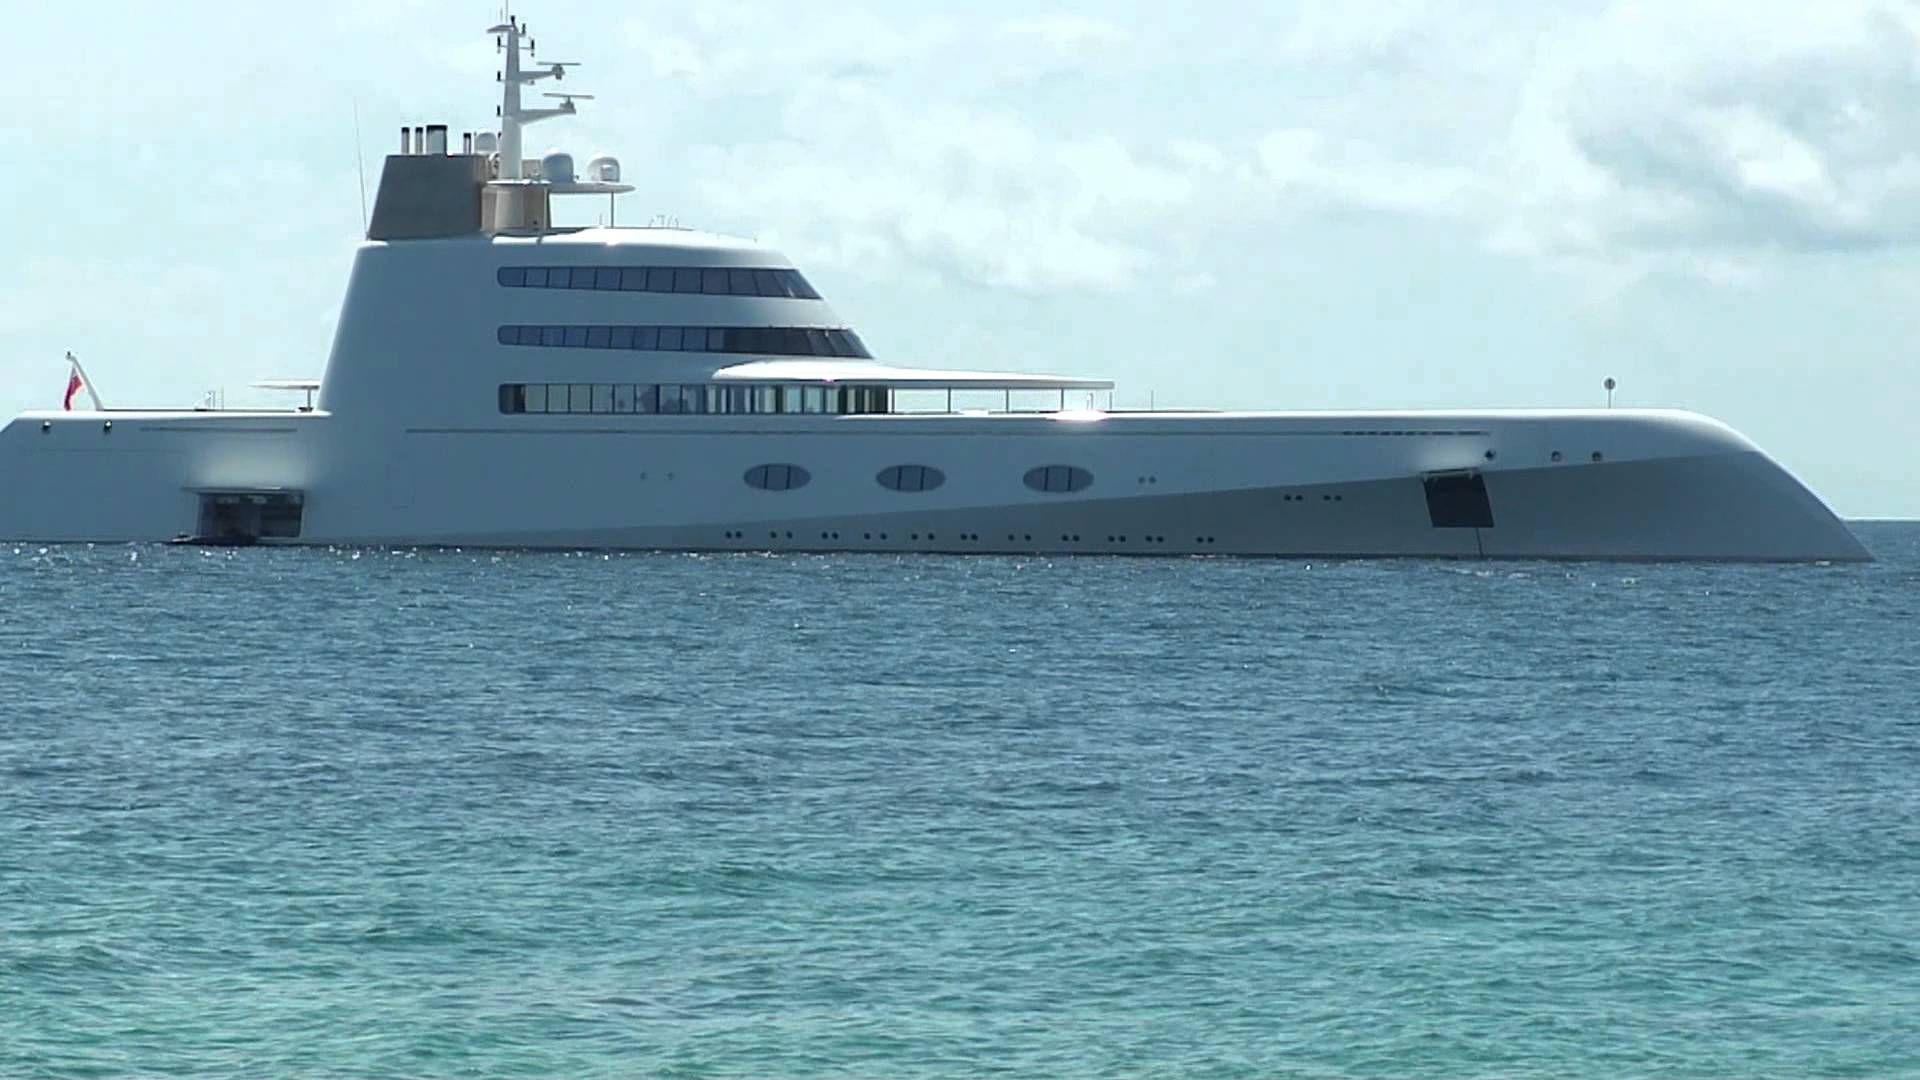 Top 10 Most Expensive Yachts in the World - The Gazette Review